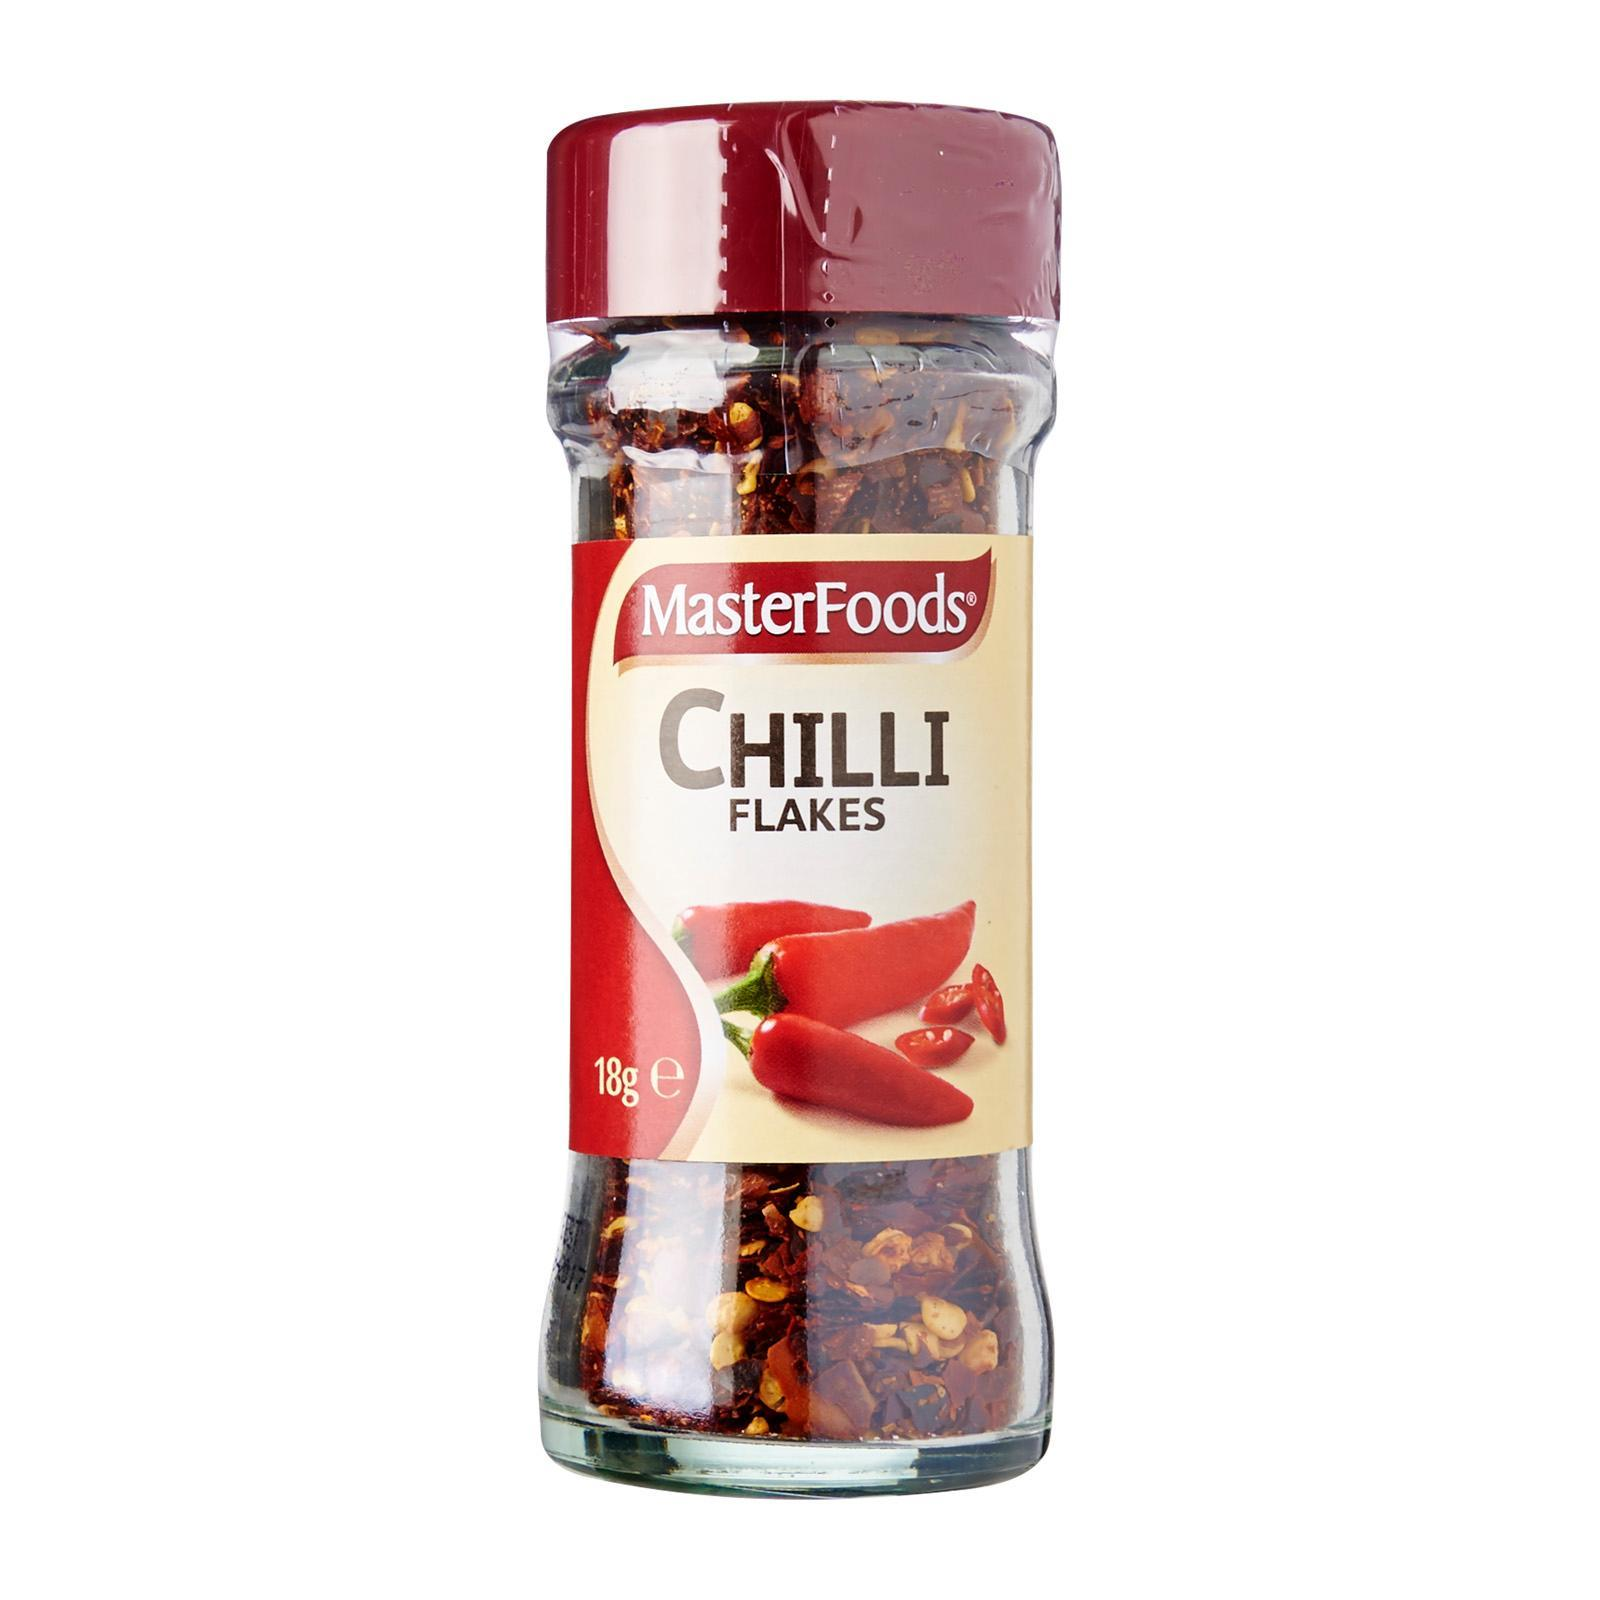 MasterFoods Spices - Chili Flakes